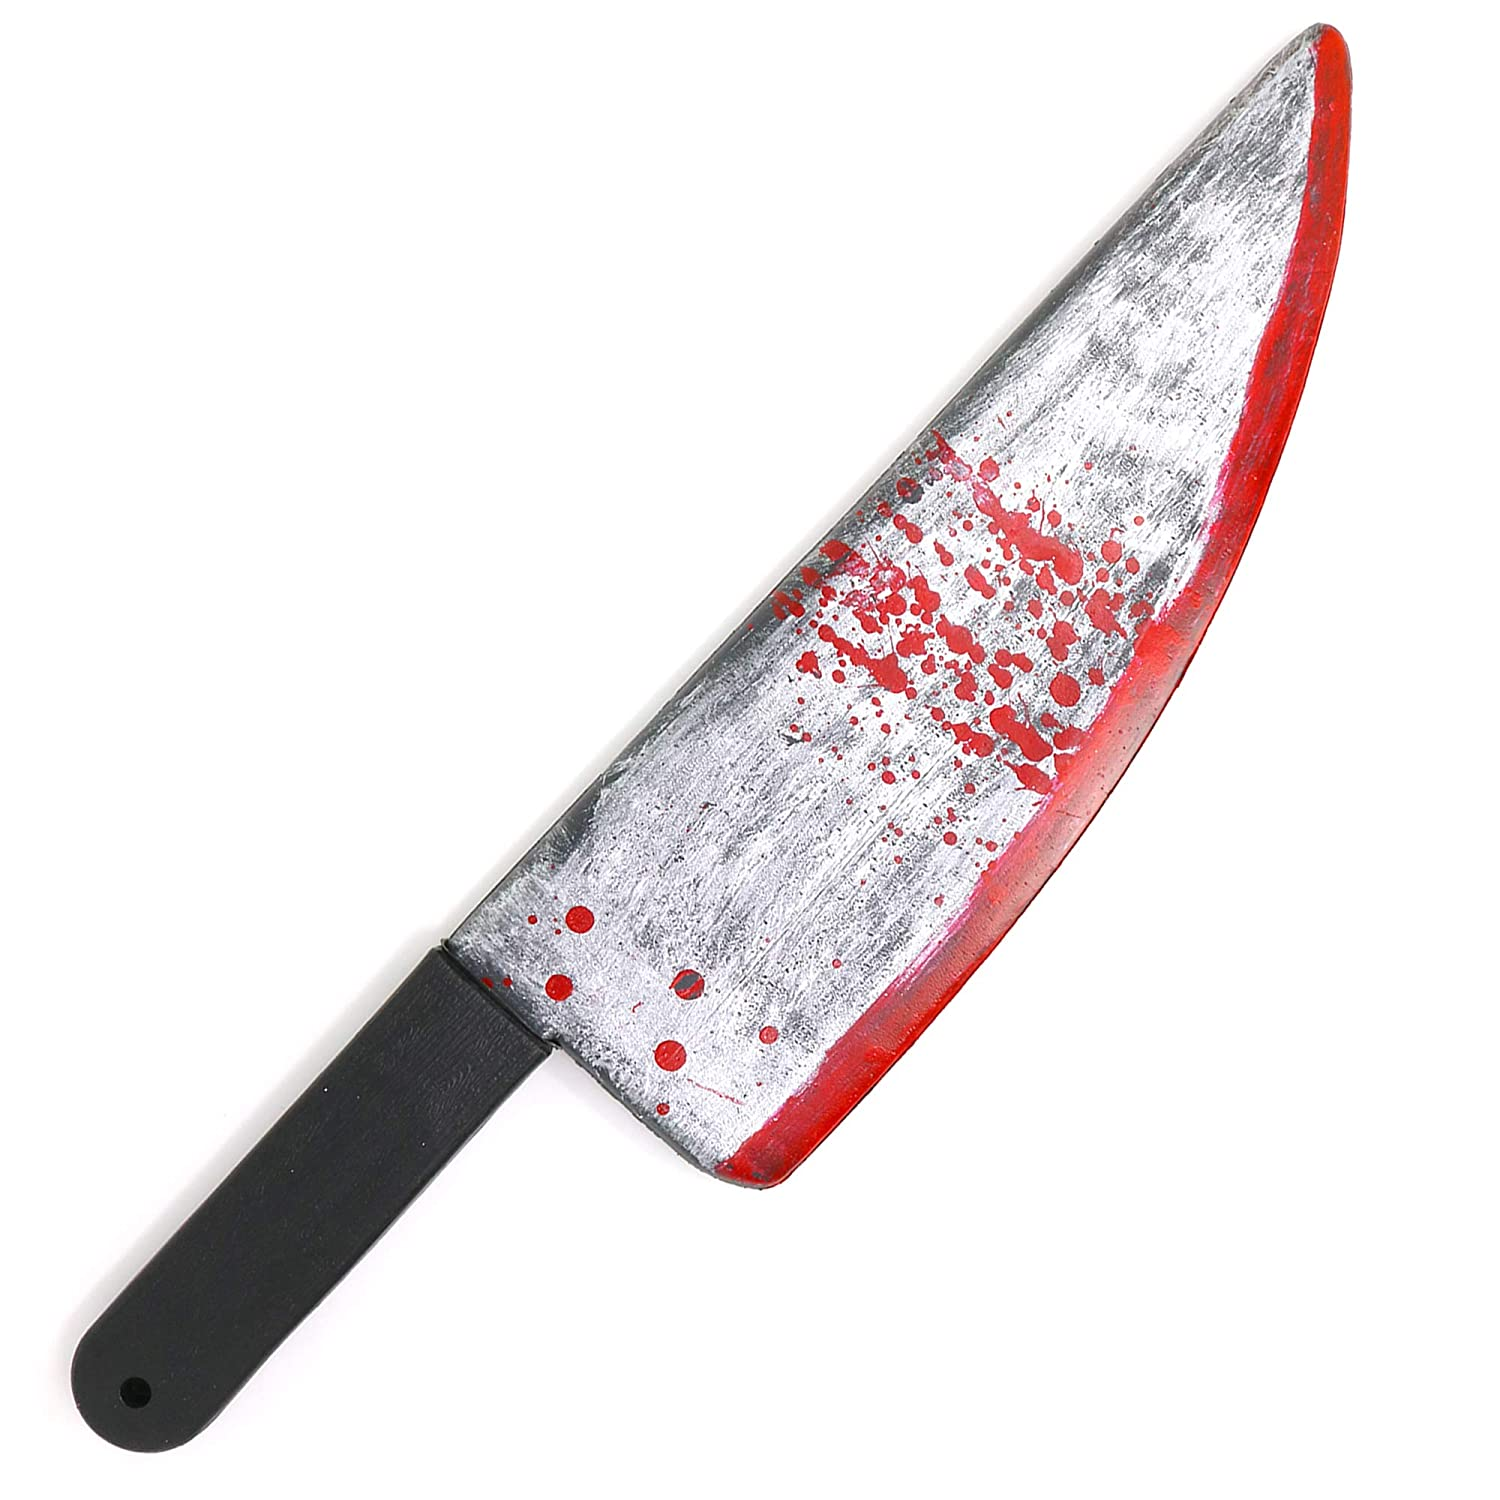 "Skeleteen Large Bloody Knife – 19"" Long, Realistic Looking Prank Toy, Fake  Plastic Blade with Blood Stains - Costume Prop or Gag Blade for Halloween  Haunted ..."